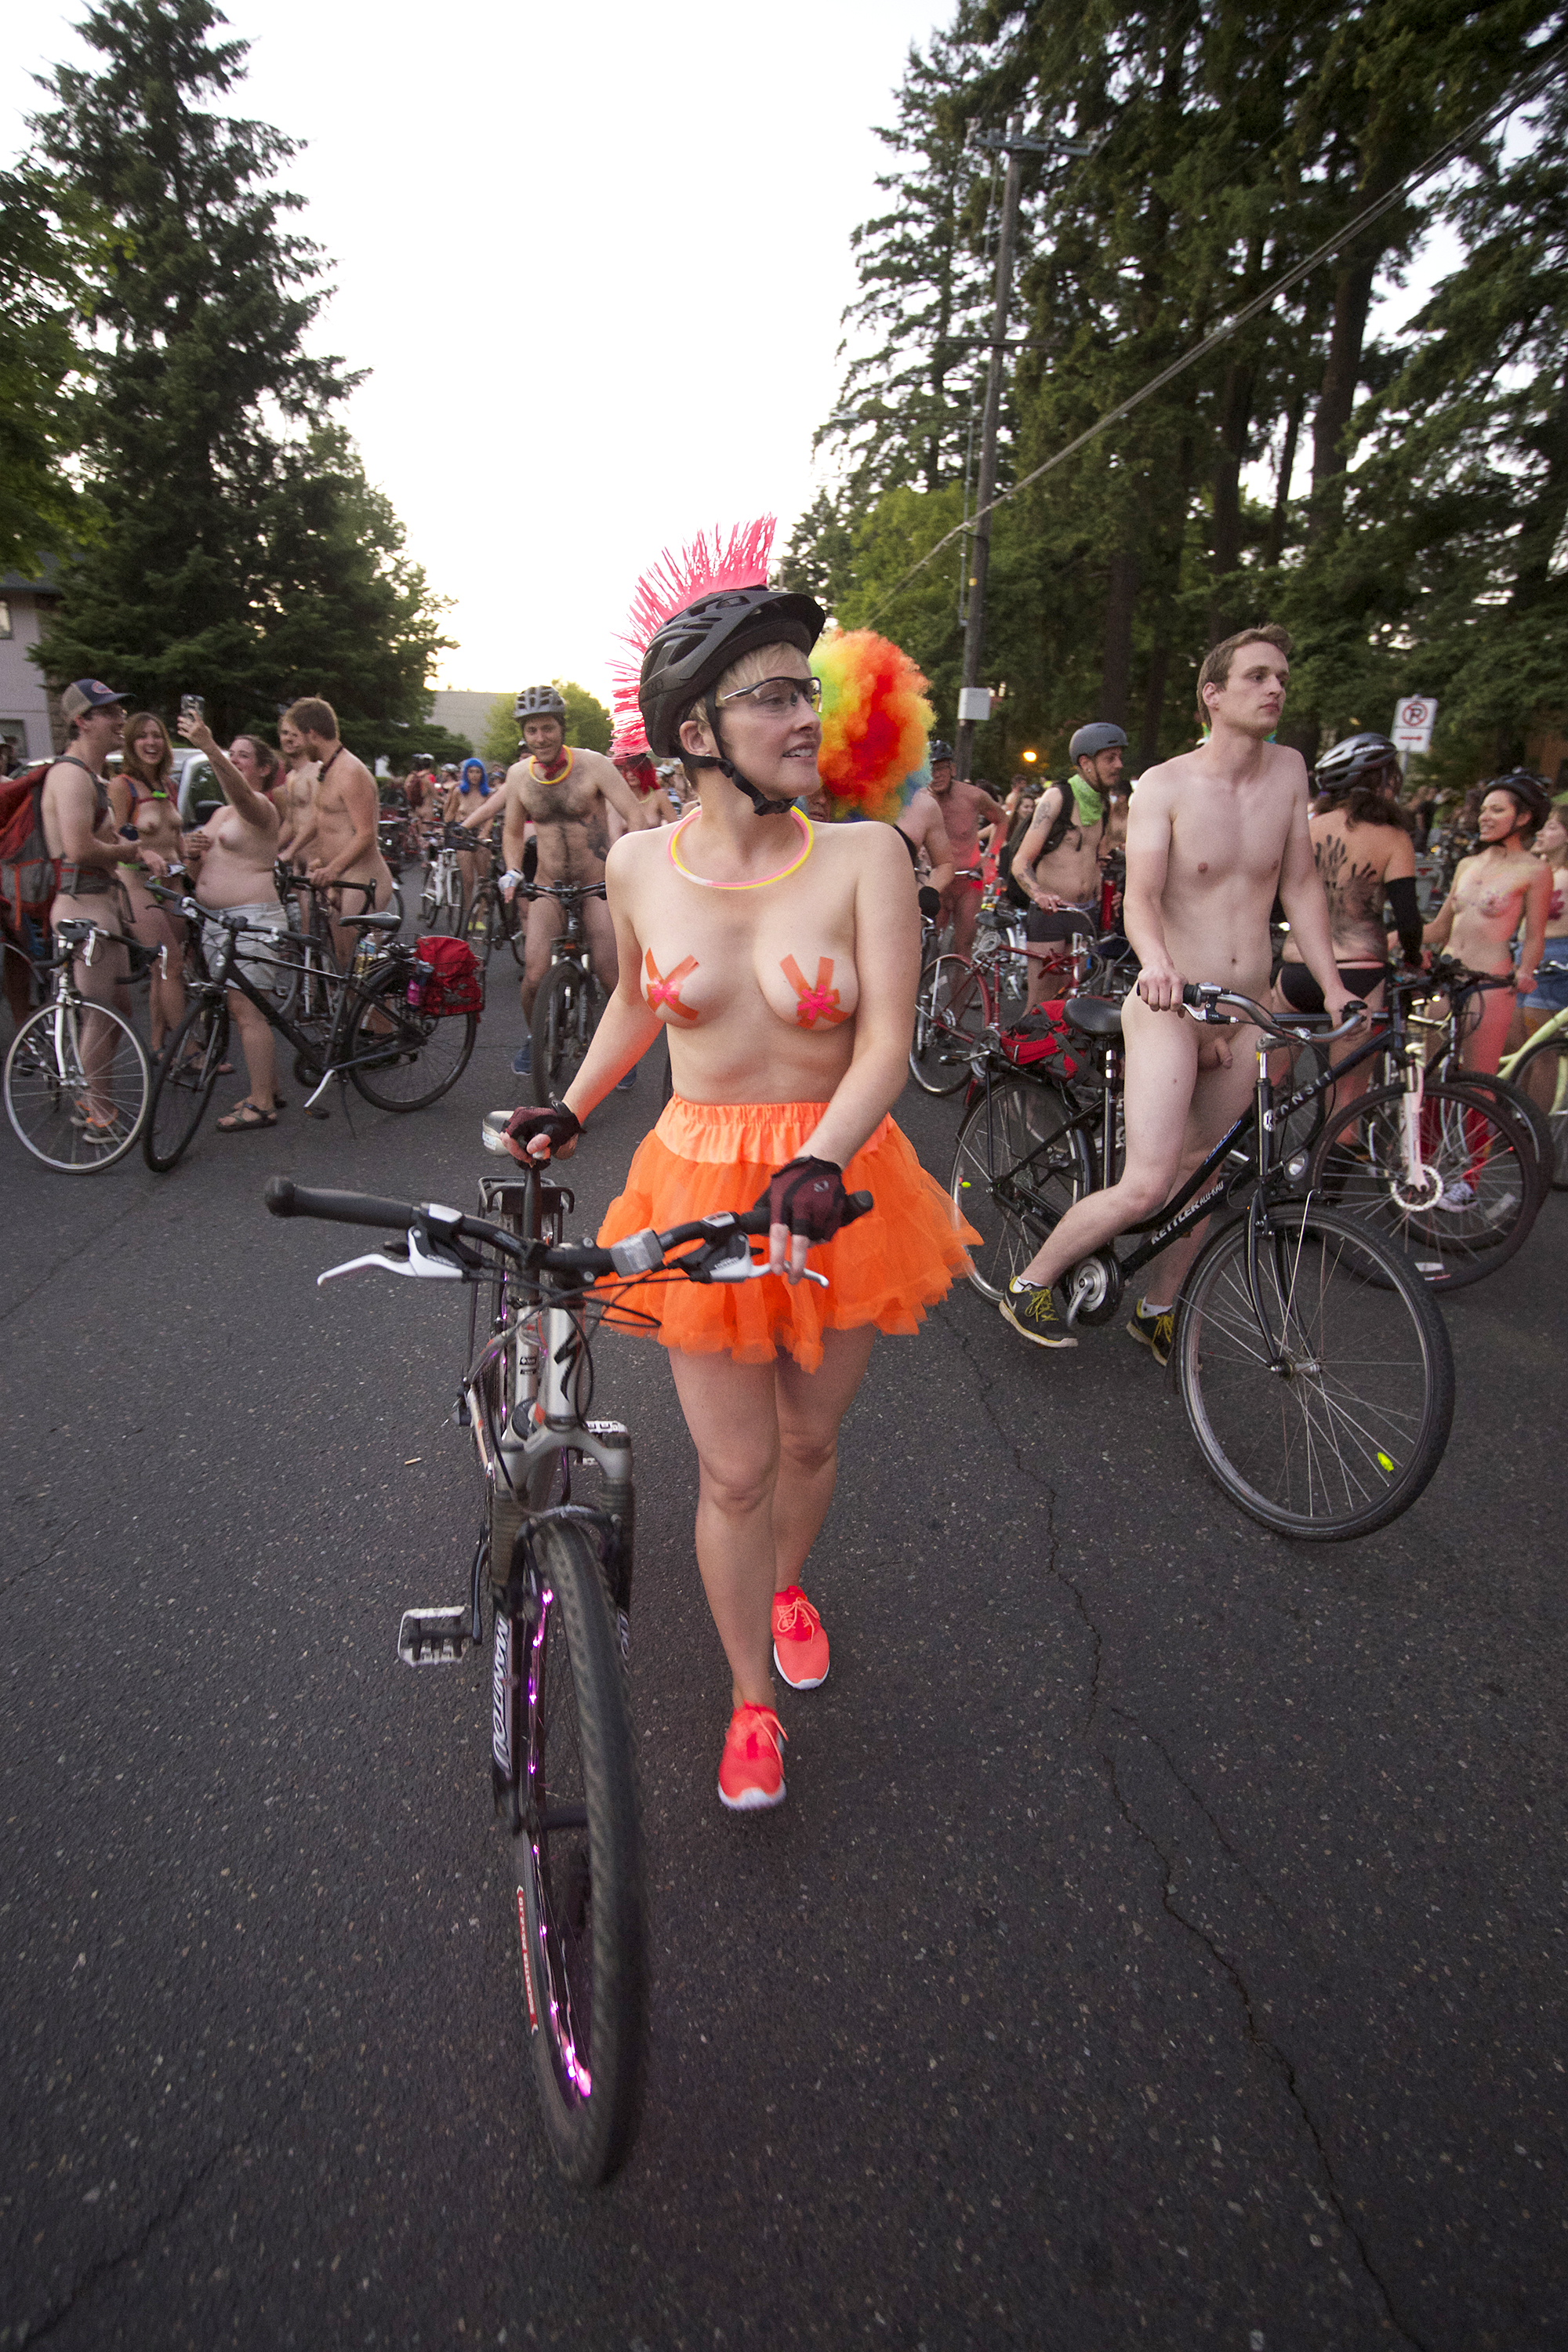 WNBR_WorldNakedBikeRide2016_JeffWalls_DSC4306